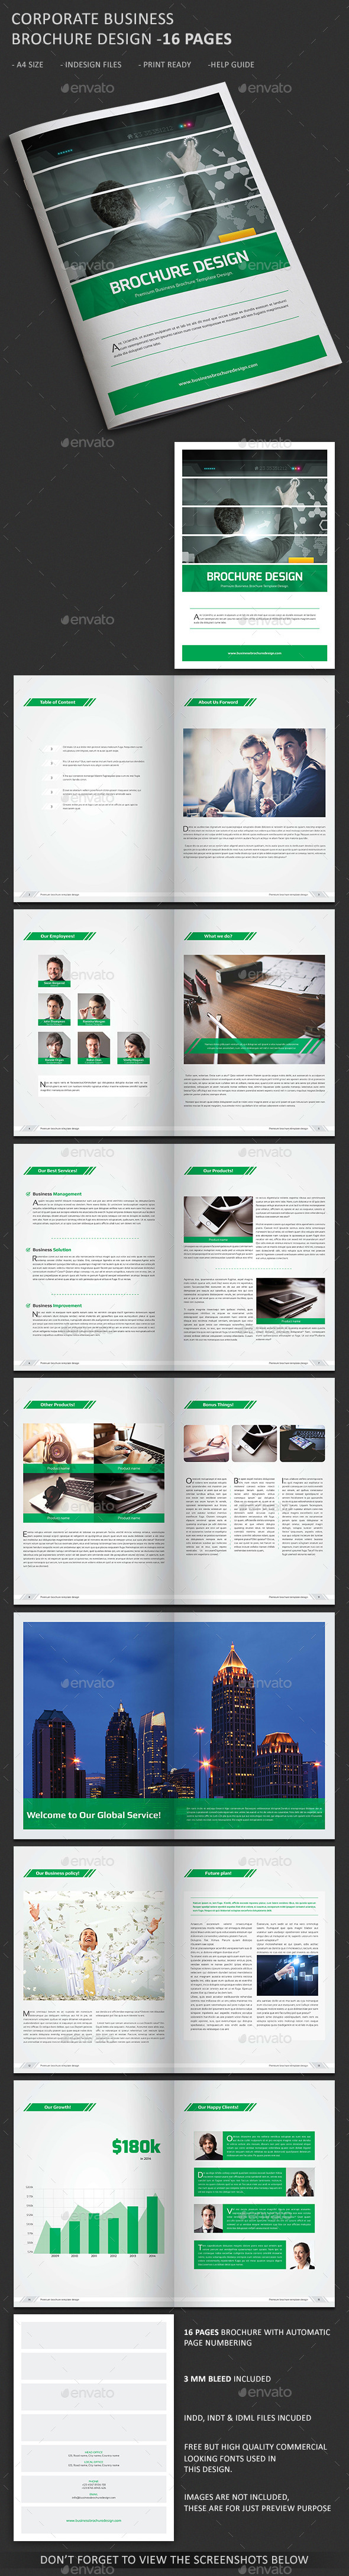 Bi-Fold Corporate Business Brochure - Corporate Brochures